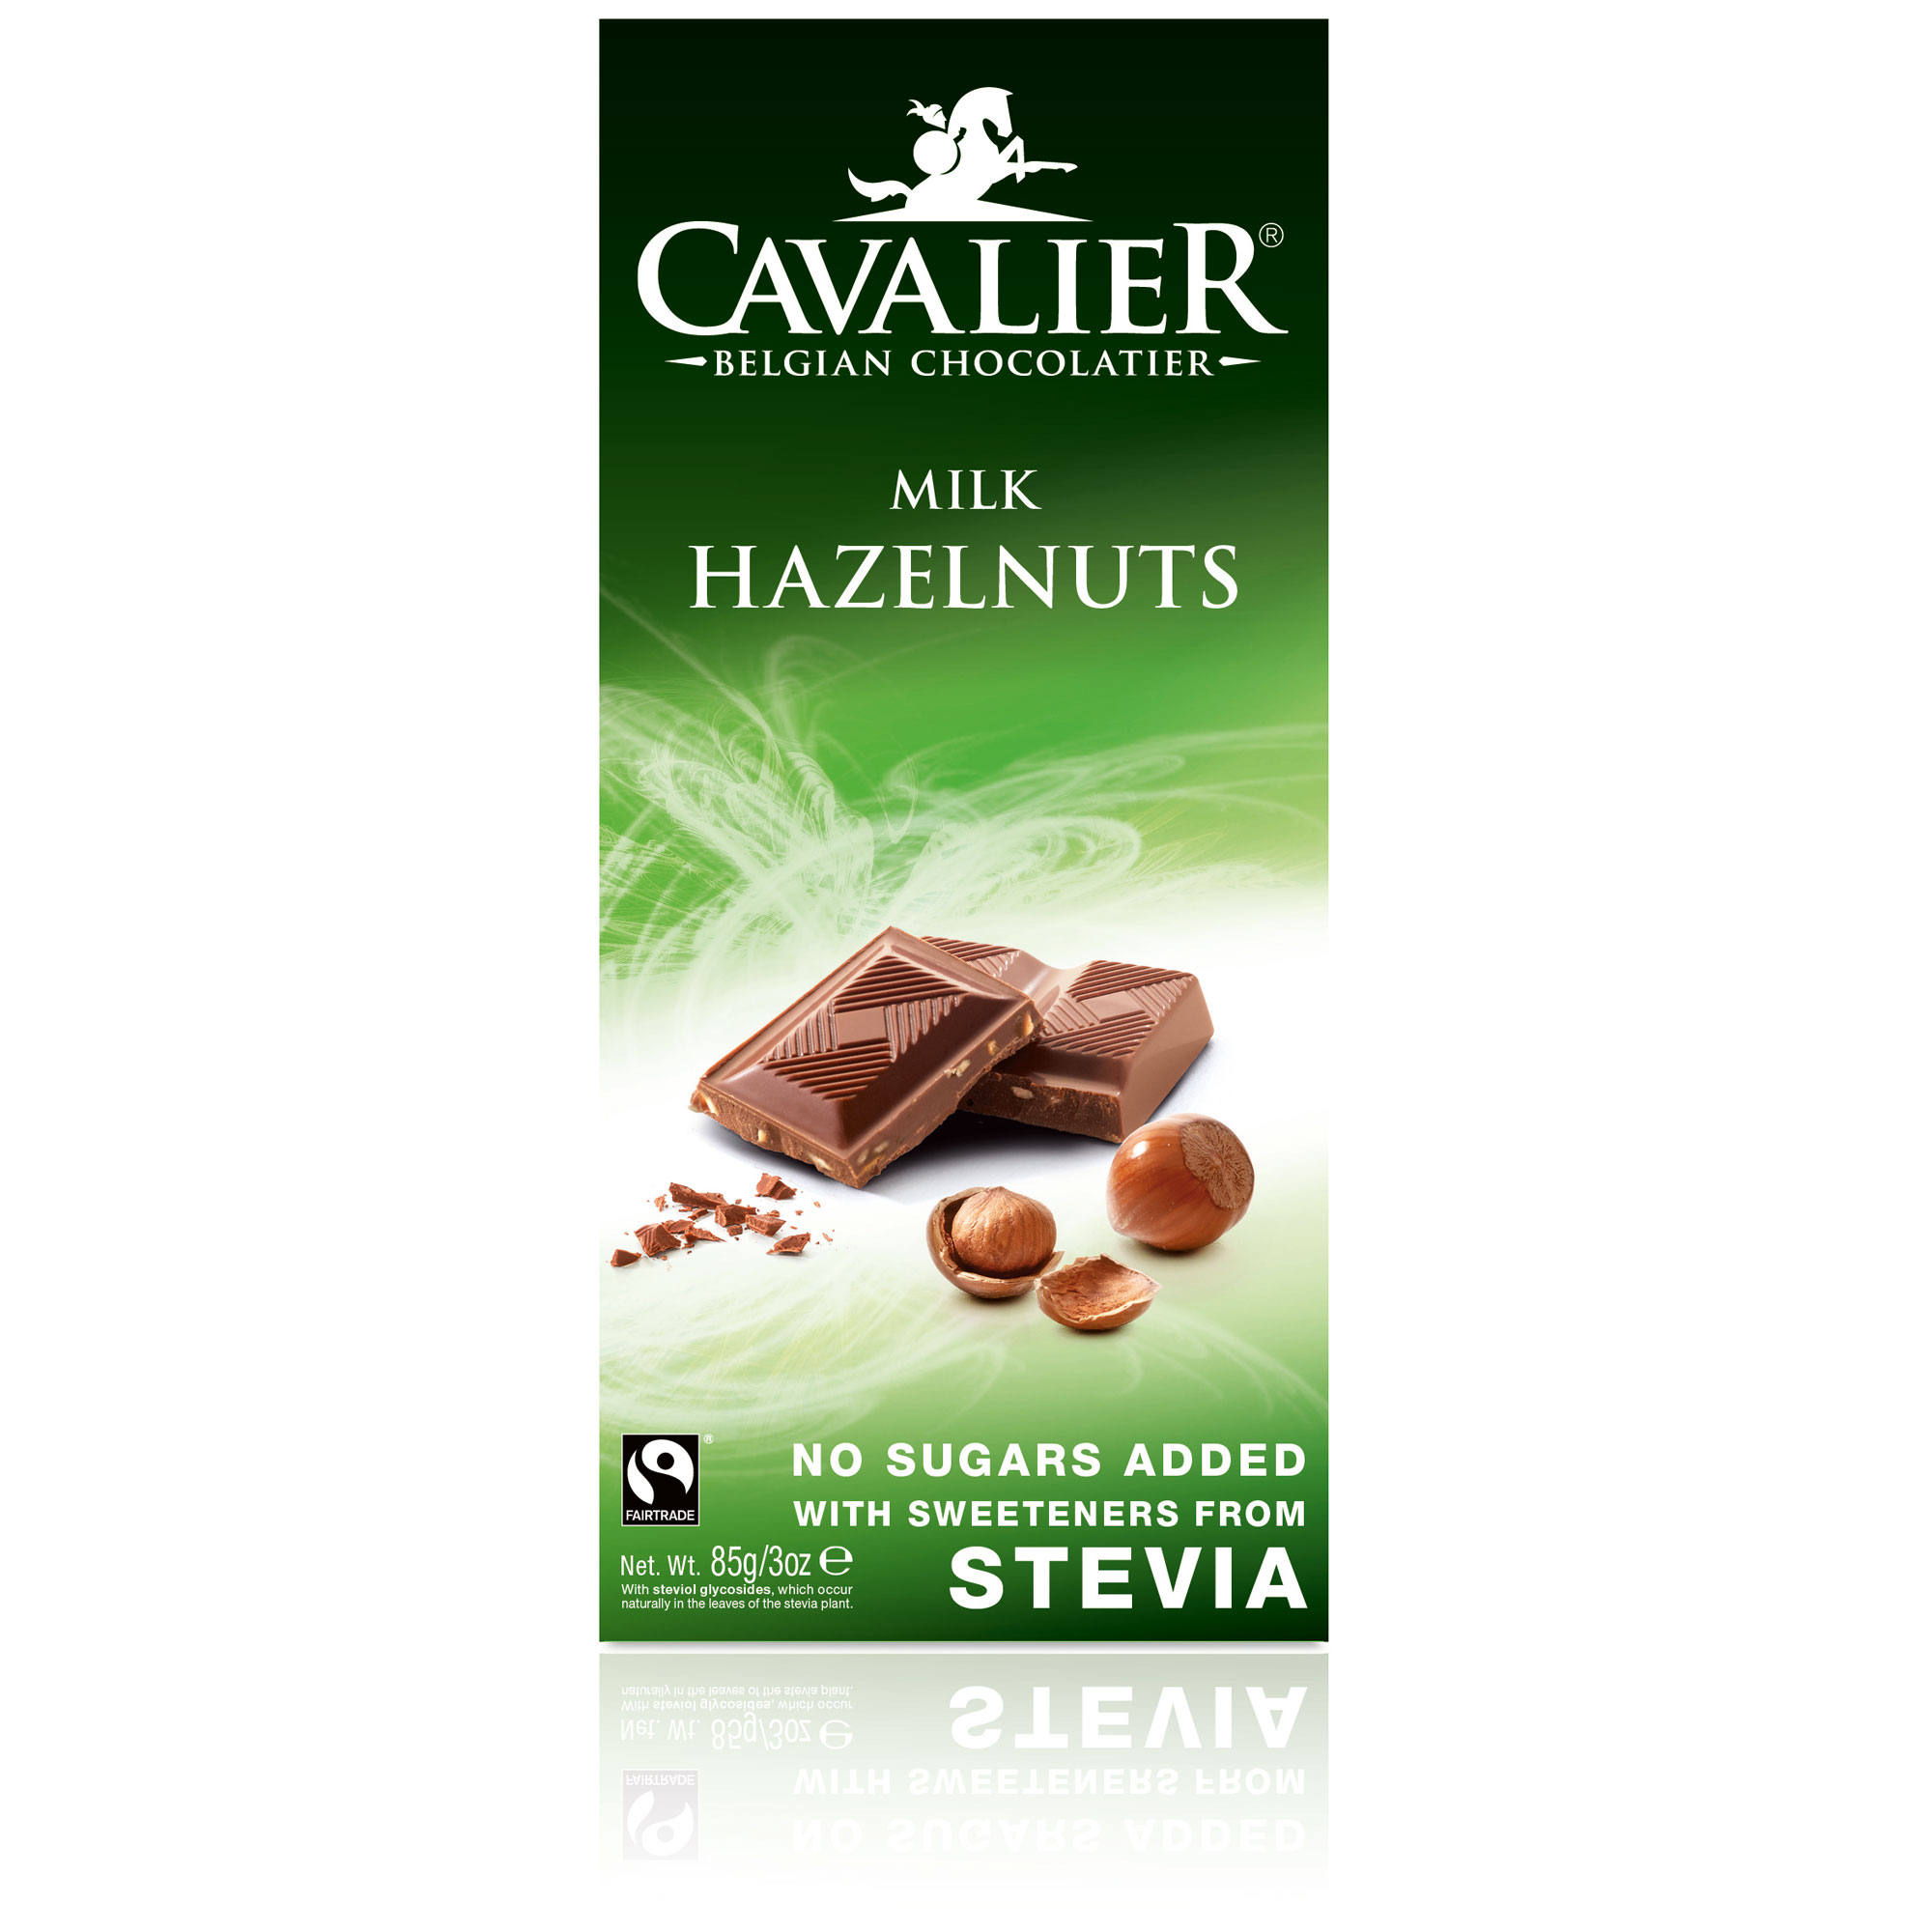 cavalier stevia milk hazelnuts online kaufen im world of sweets shop. Black Bedroom Furniture Sets. Home Design Ideas